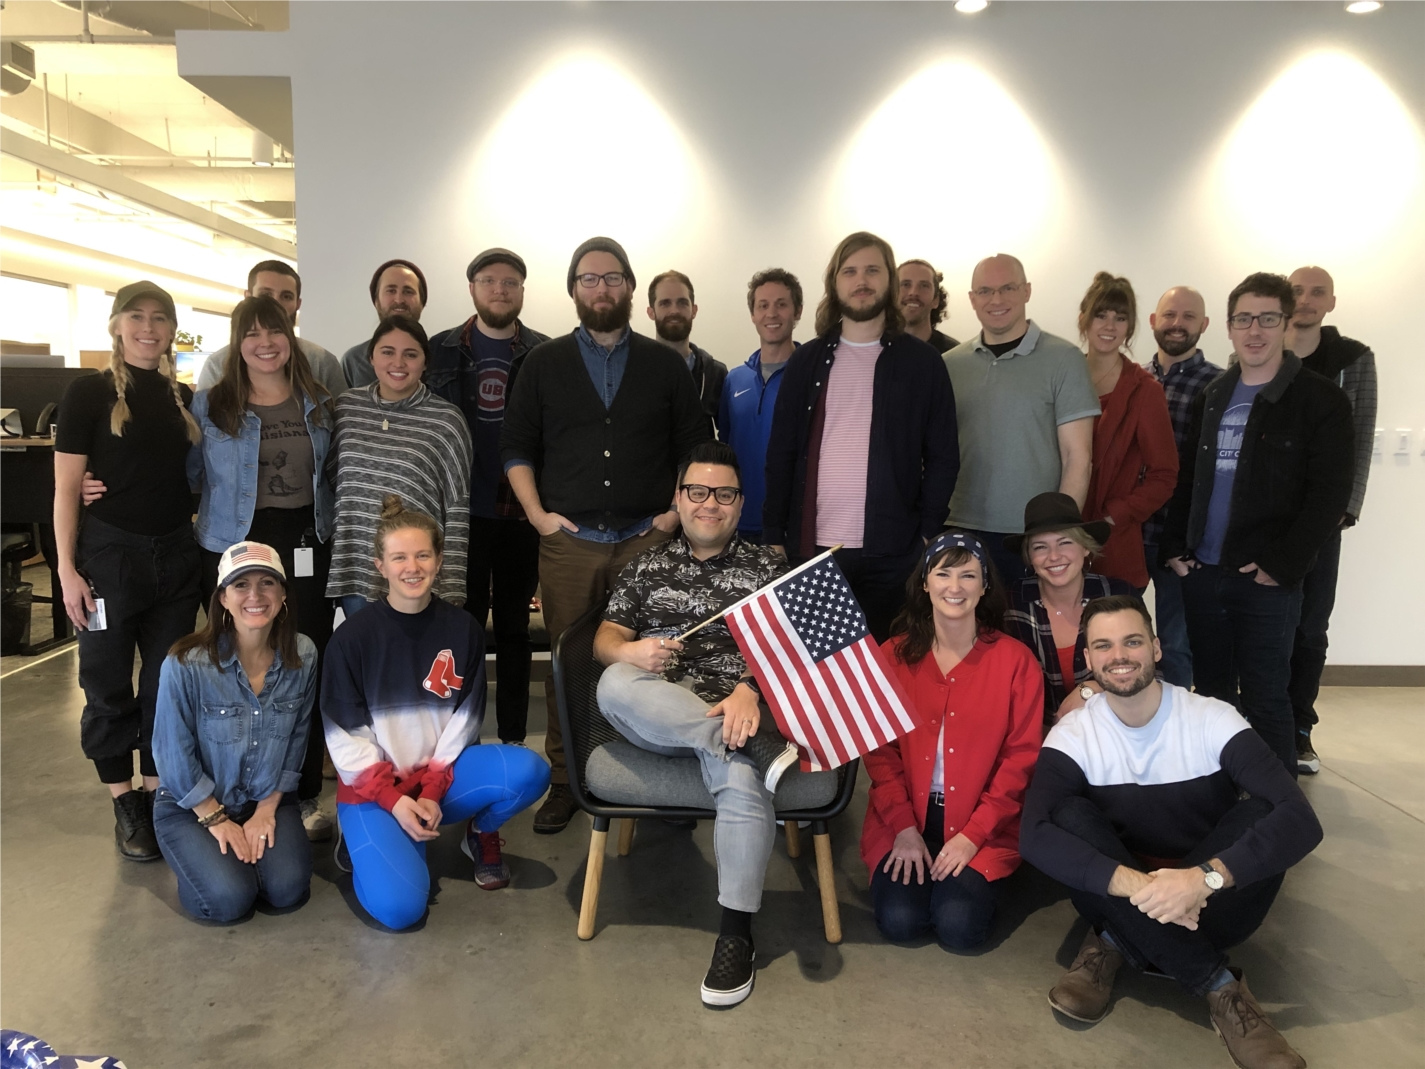 When one of our own became an American citizen, it was time to celebrate.